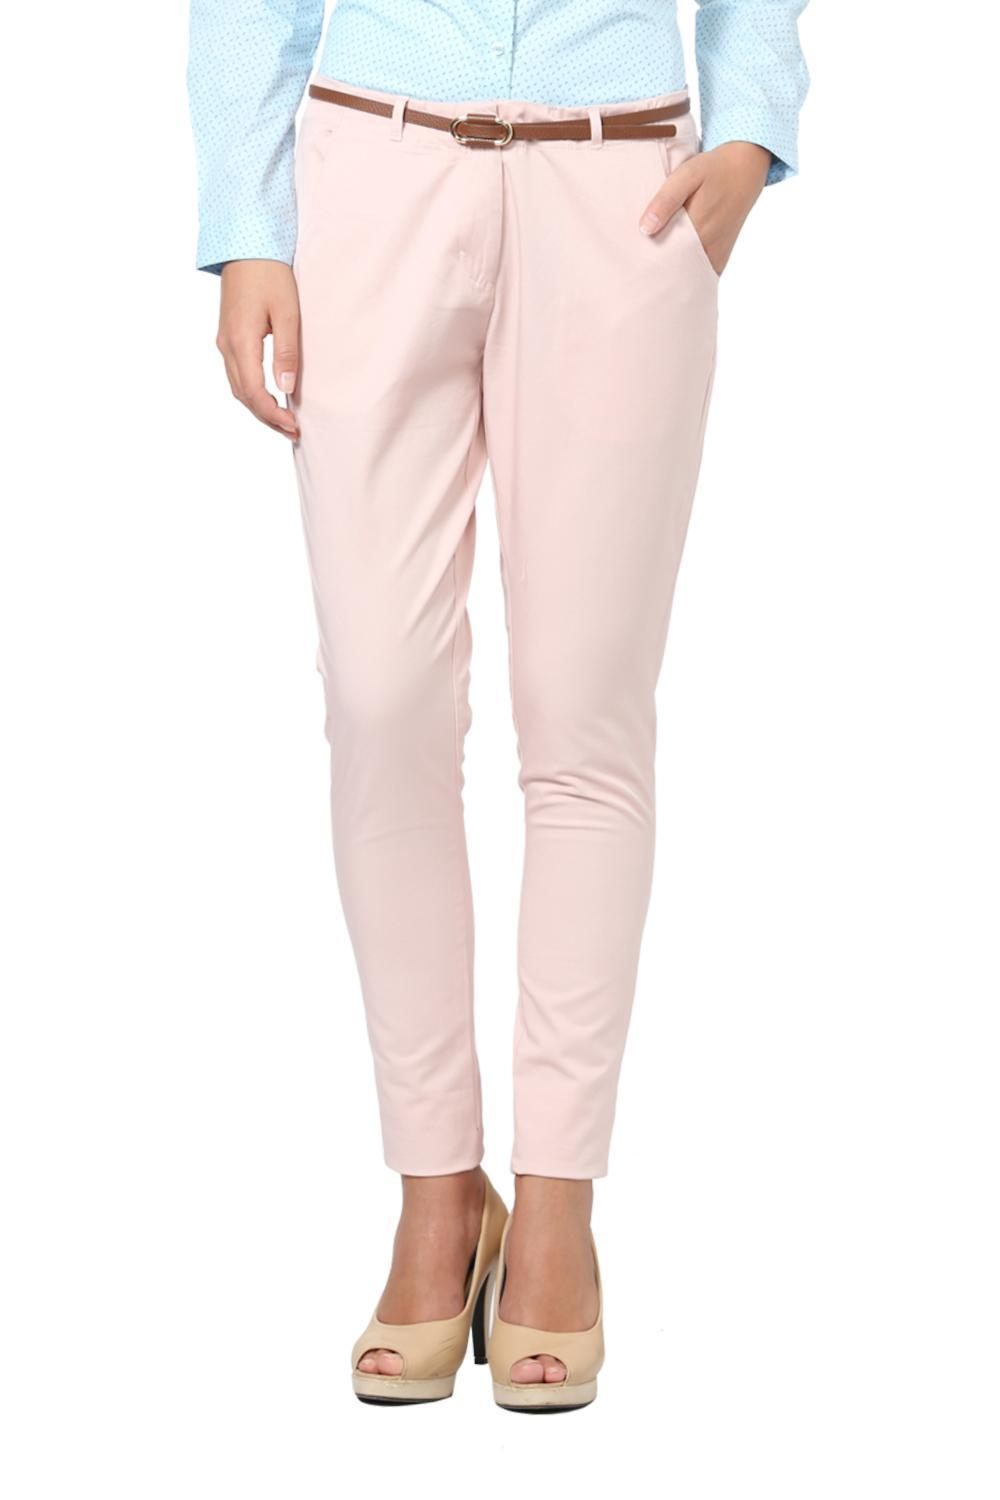 c24b2a7a6a0e66 Solly Trousers & Leggings, Allen Solly Pink Trousers for Women at Allensolly .com